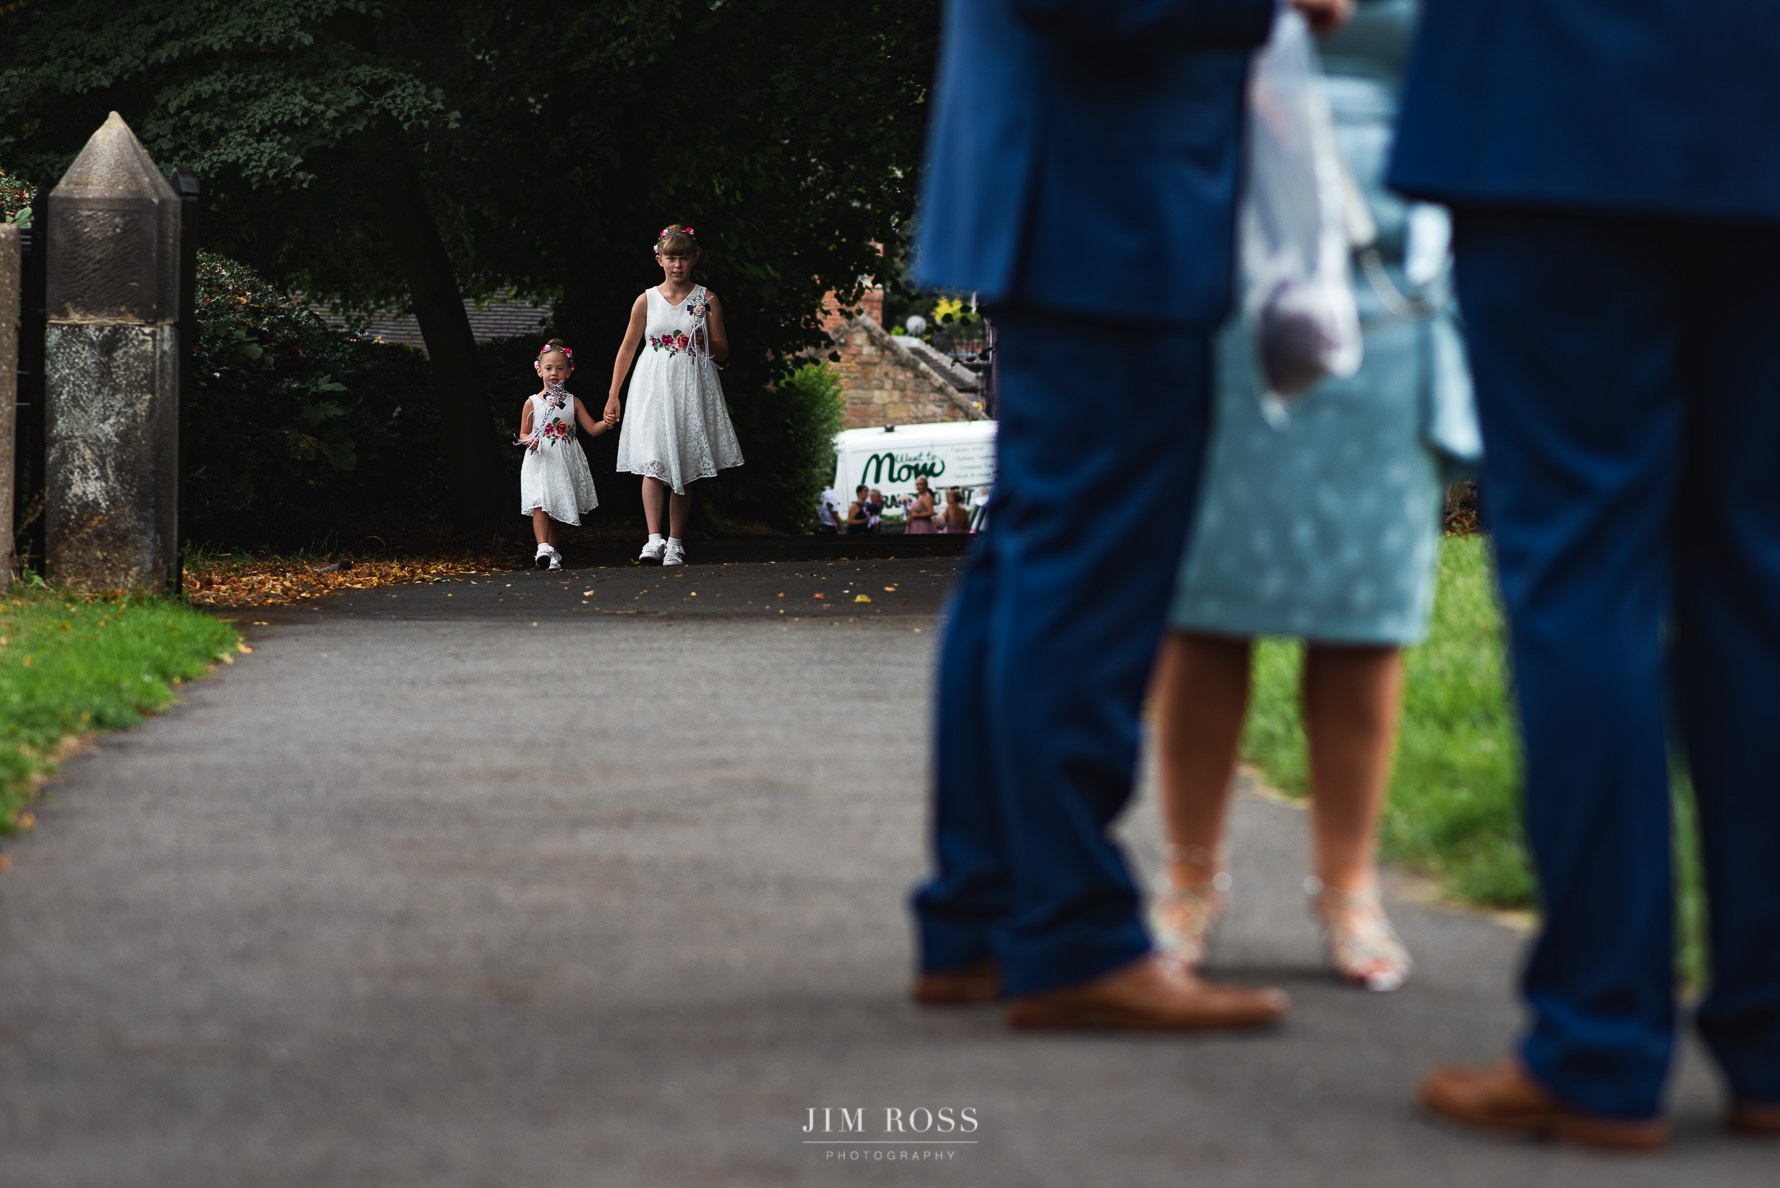 Flower girls arrive at church